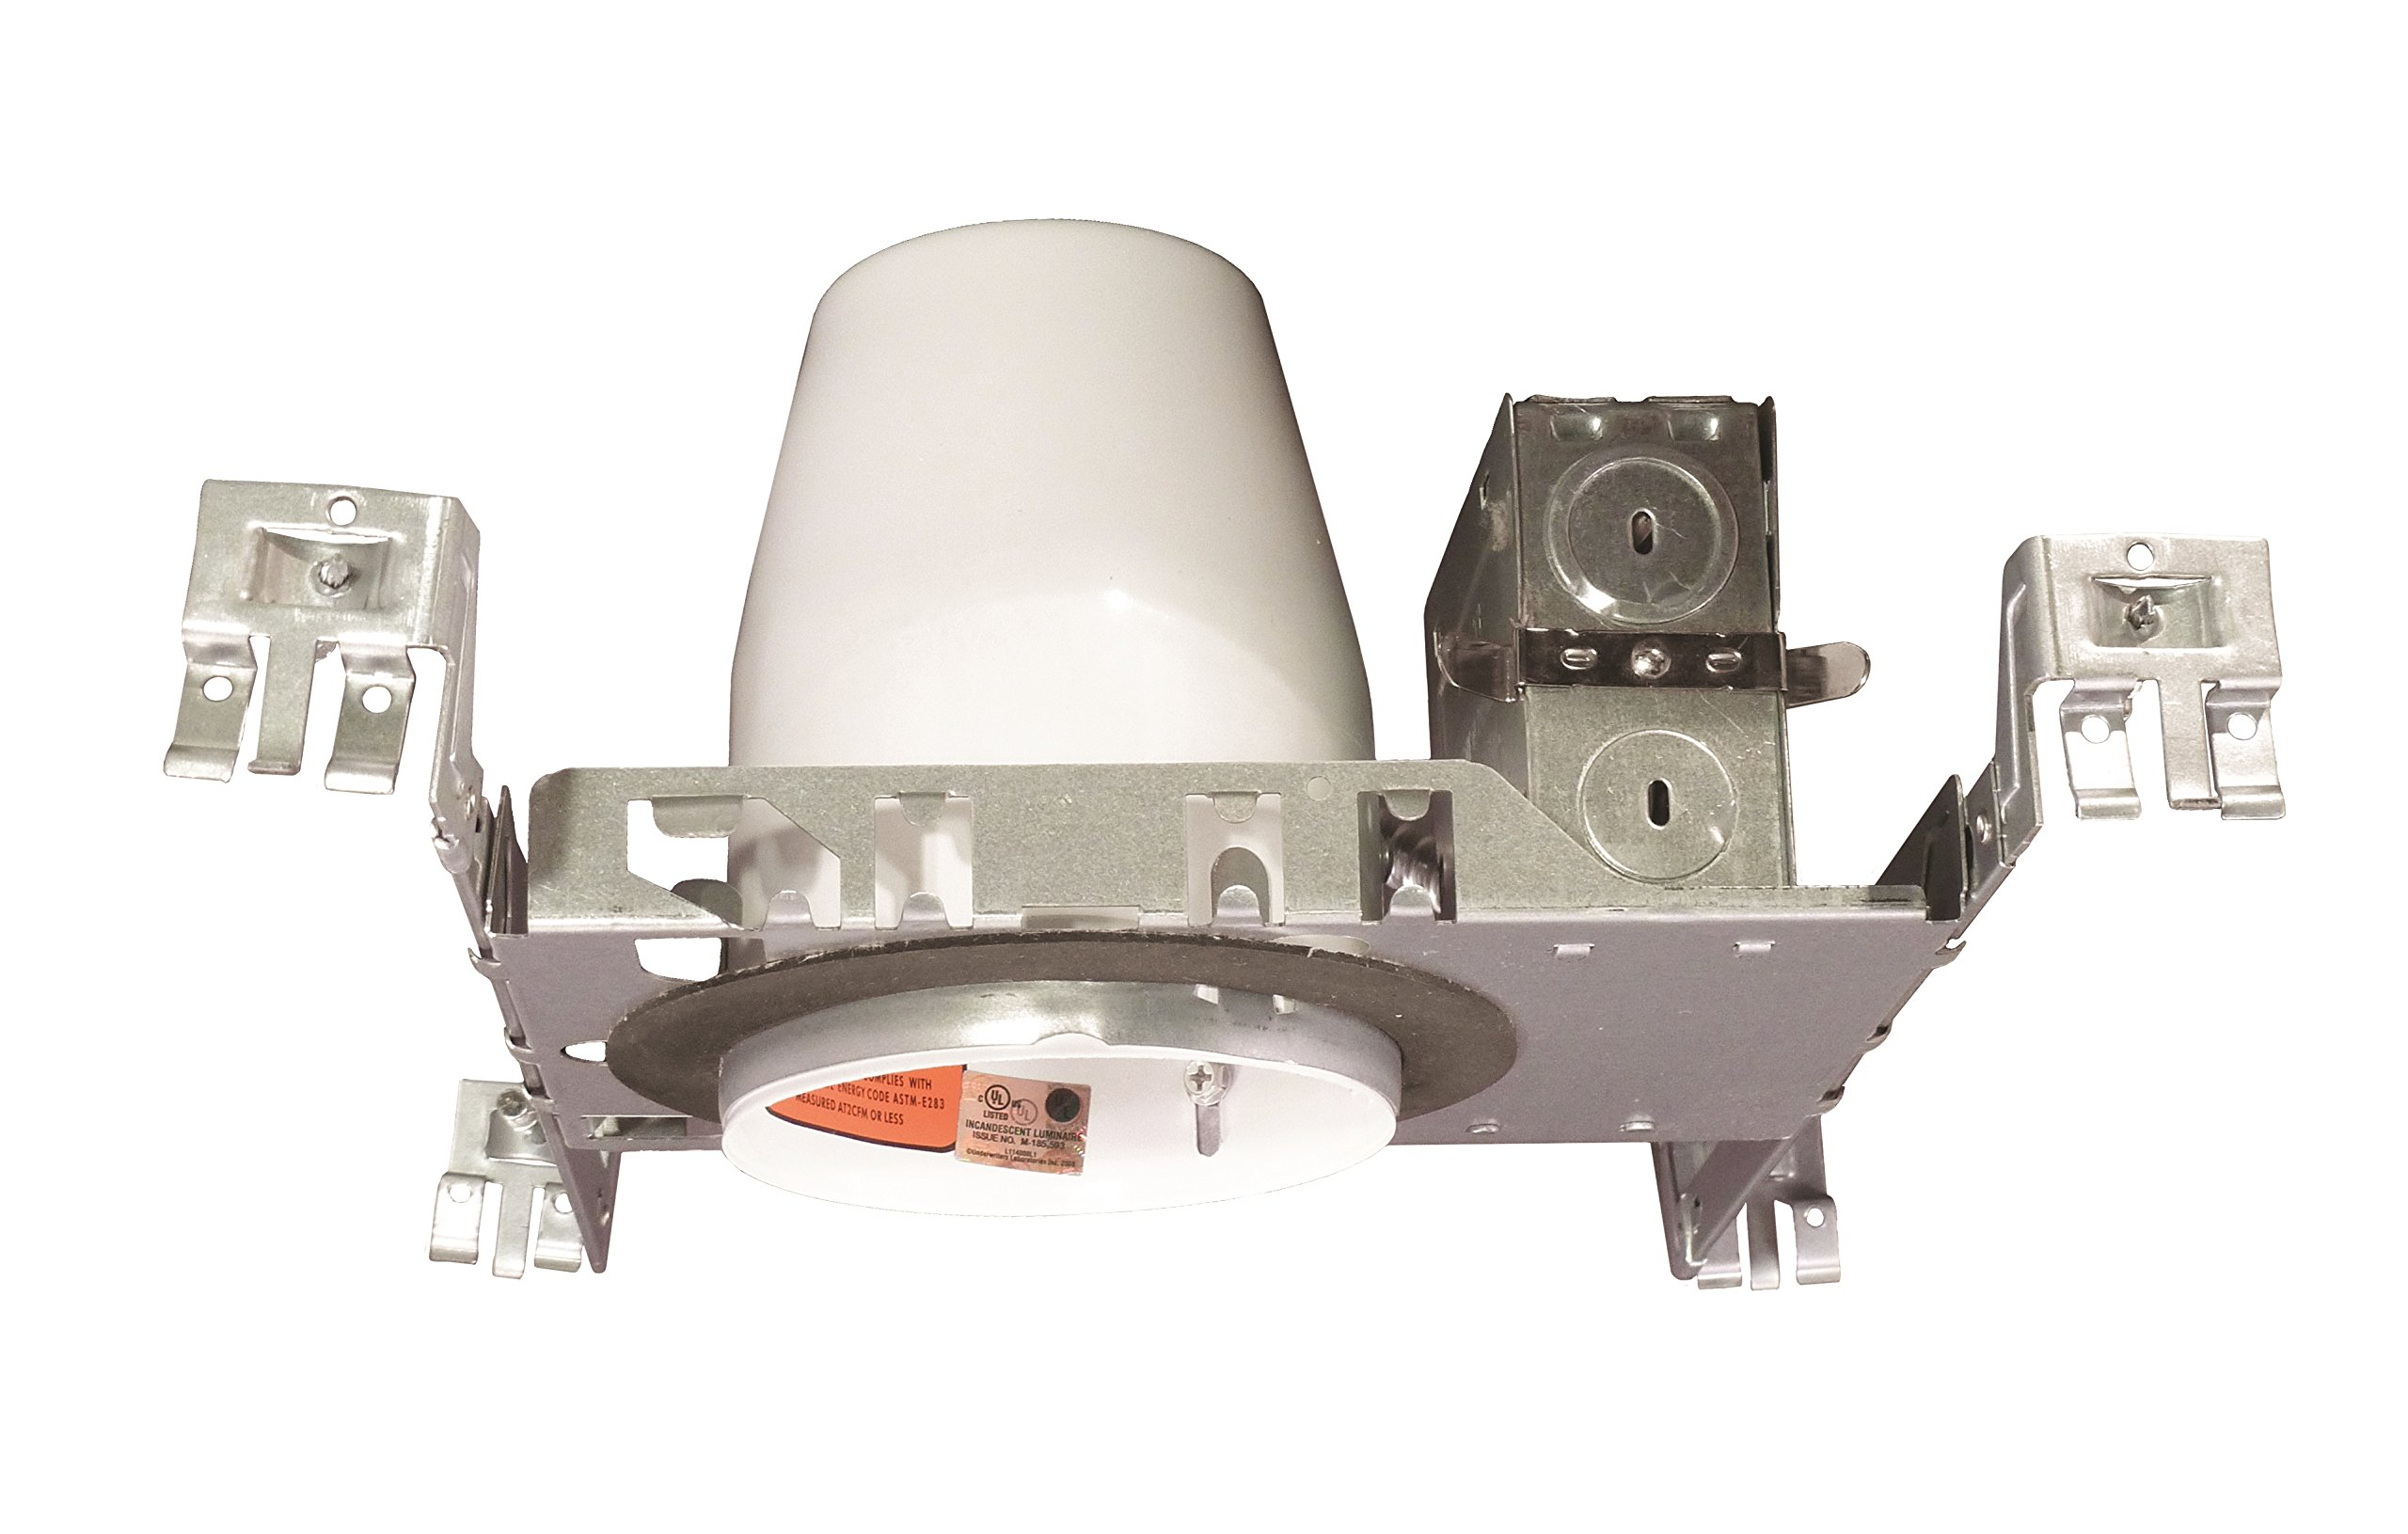 NICOR Lighting 4-Inch IC-Rated Airtight LED Downlight Recessed New Construction Housing (19000A-LED-ID)